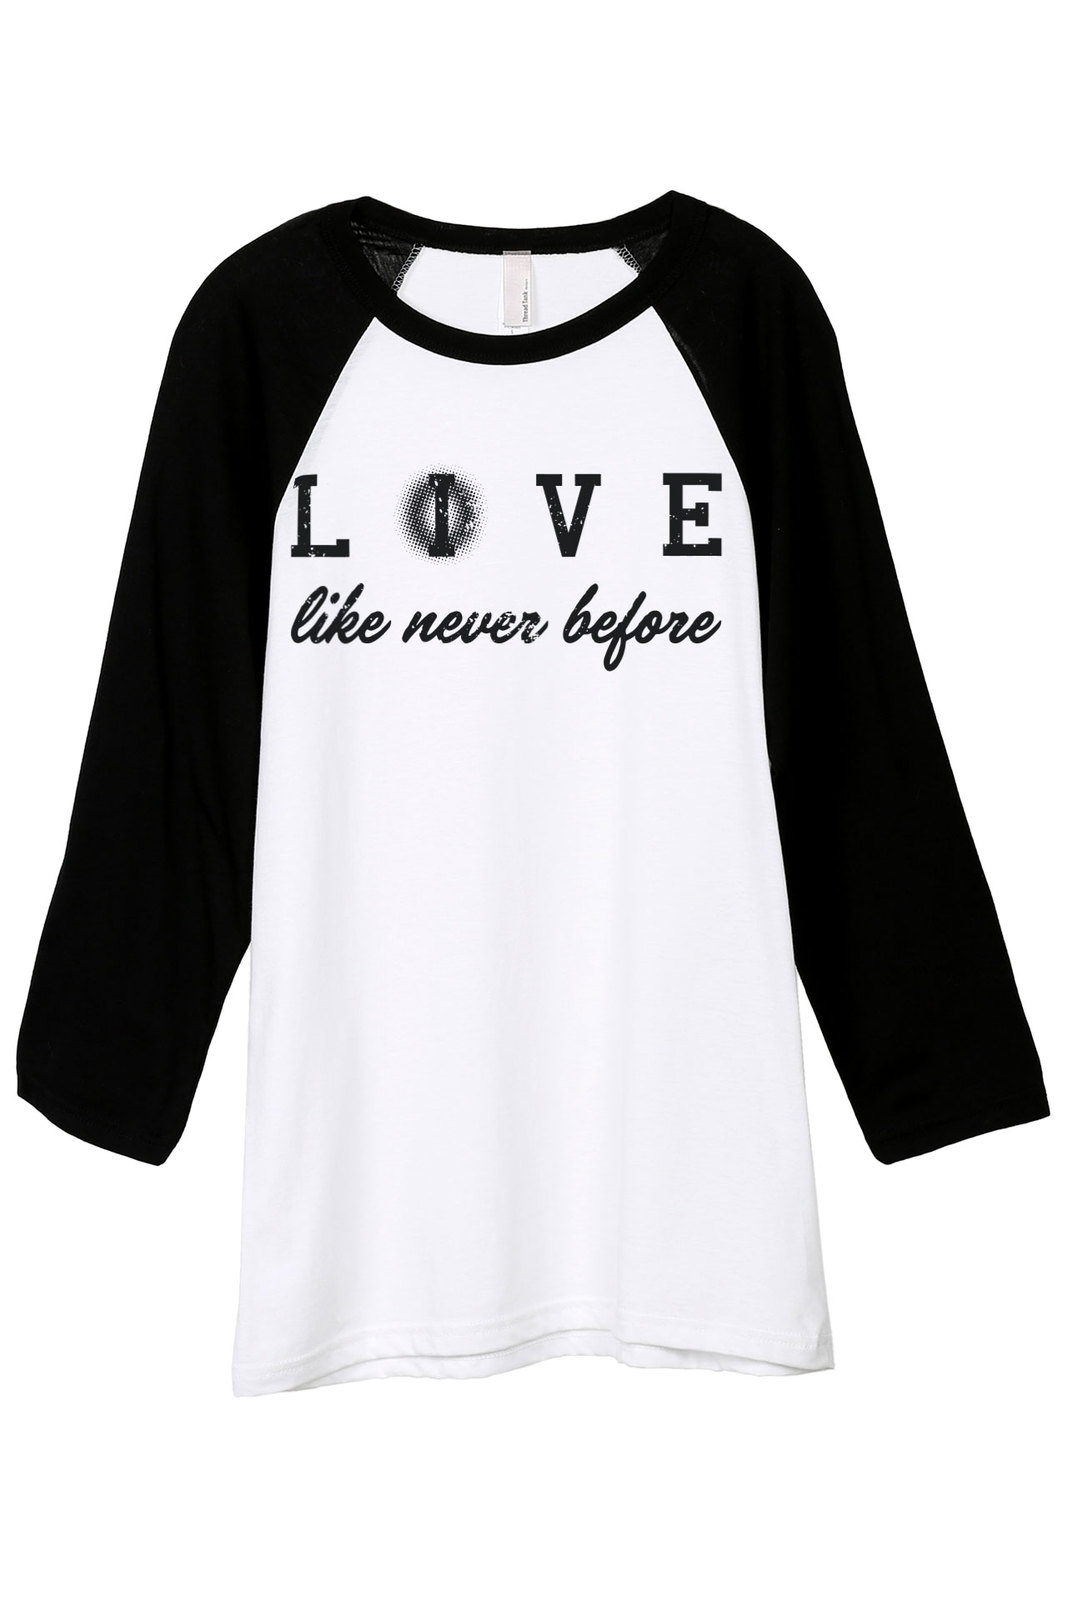 Primary image for Thread Tank Live (Love) Like Never Before Unisex 3/4 Sleeves Baseball Raglan T-S